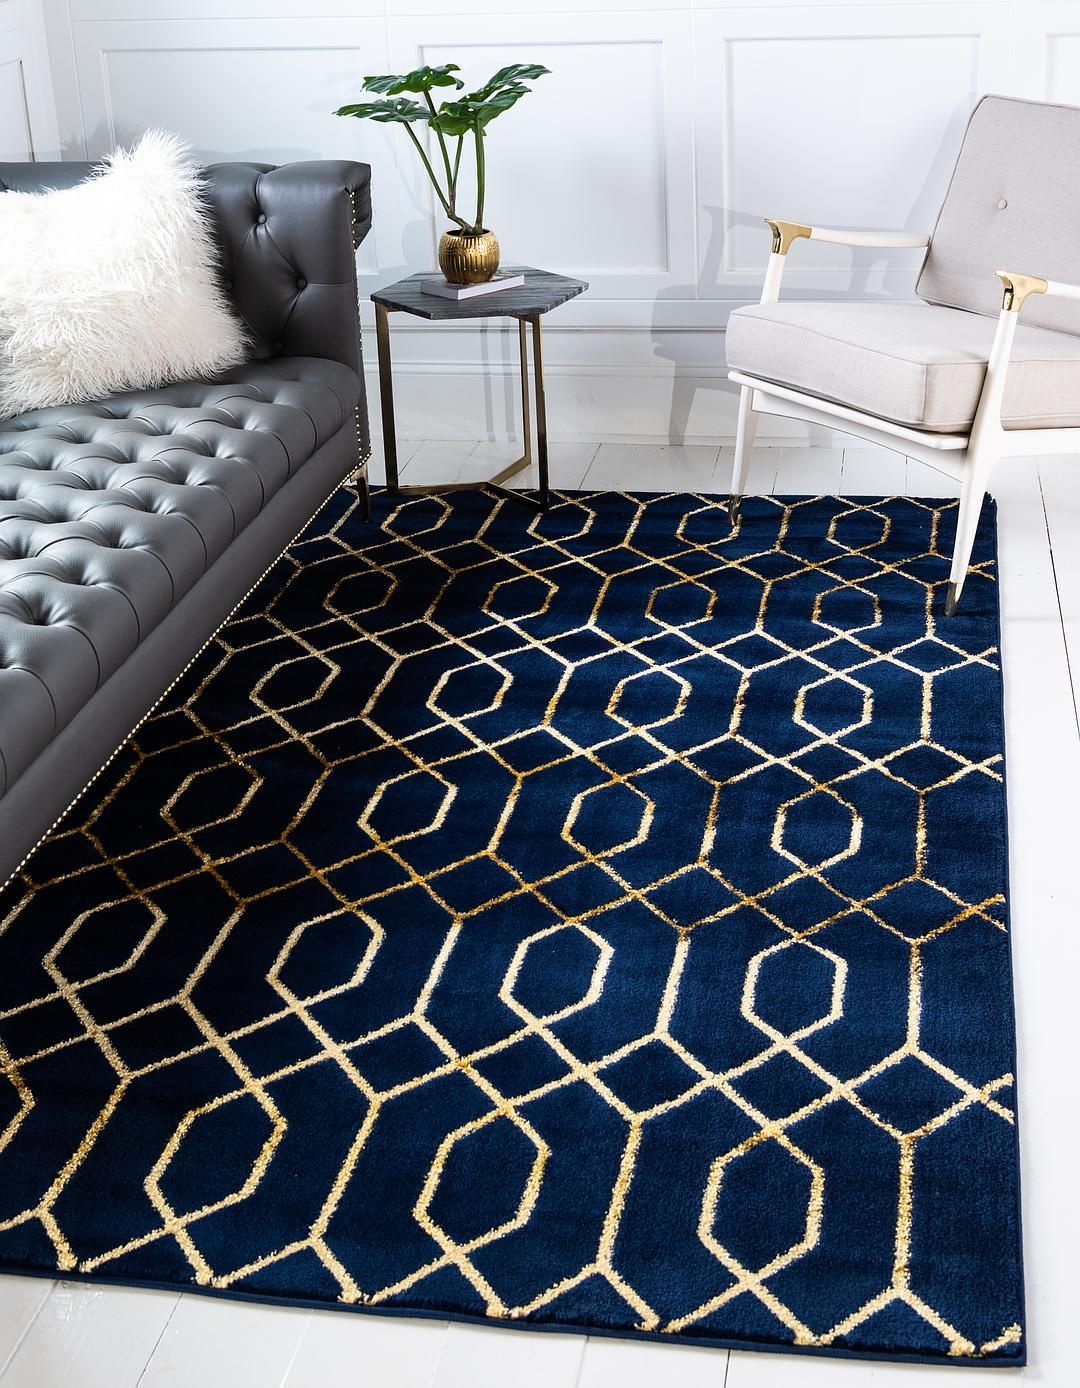 Blue And Gold Living Room Gold Living Room Blue And Gold Living Room Blue And Gold Bedroom